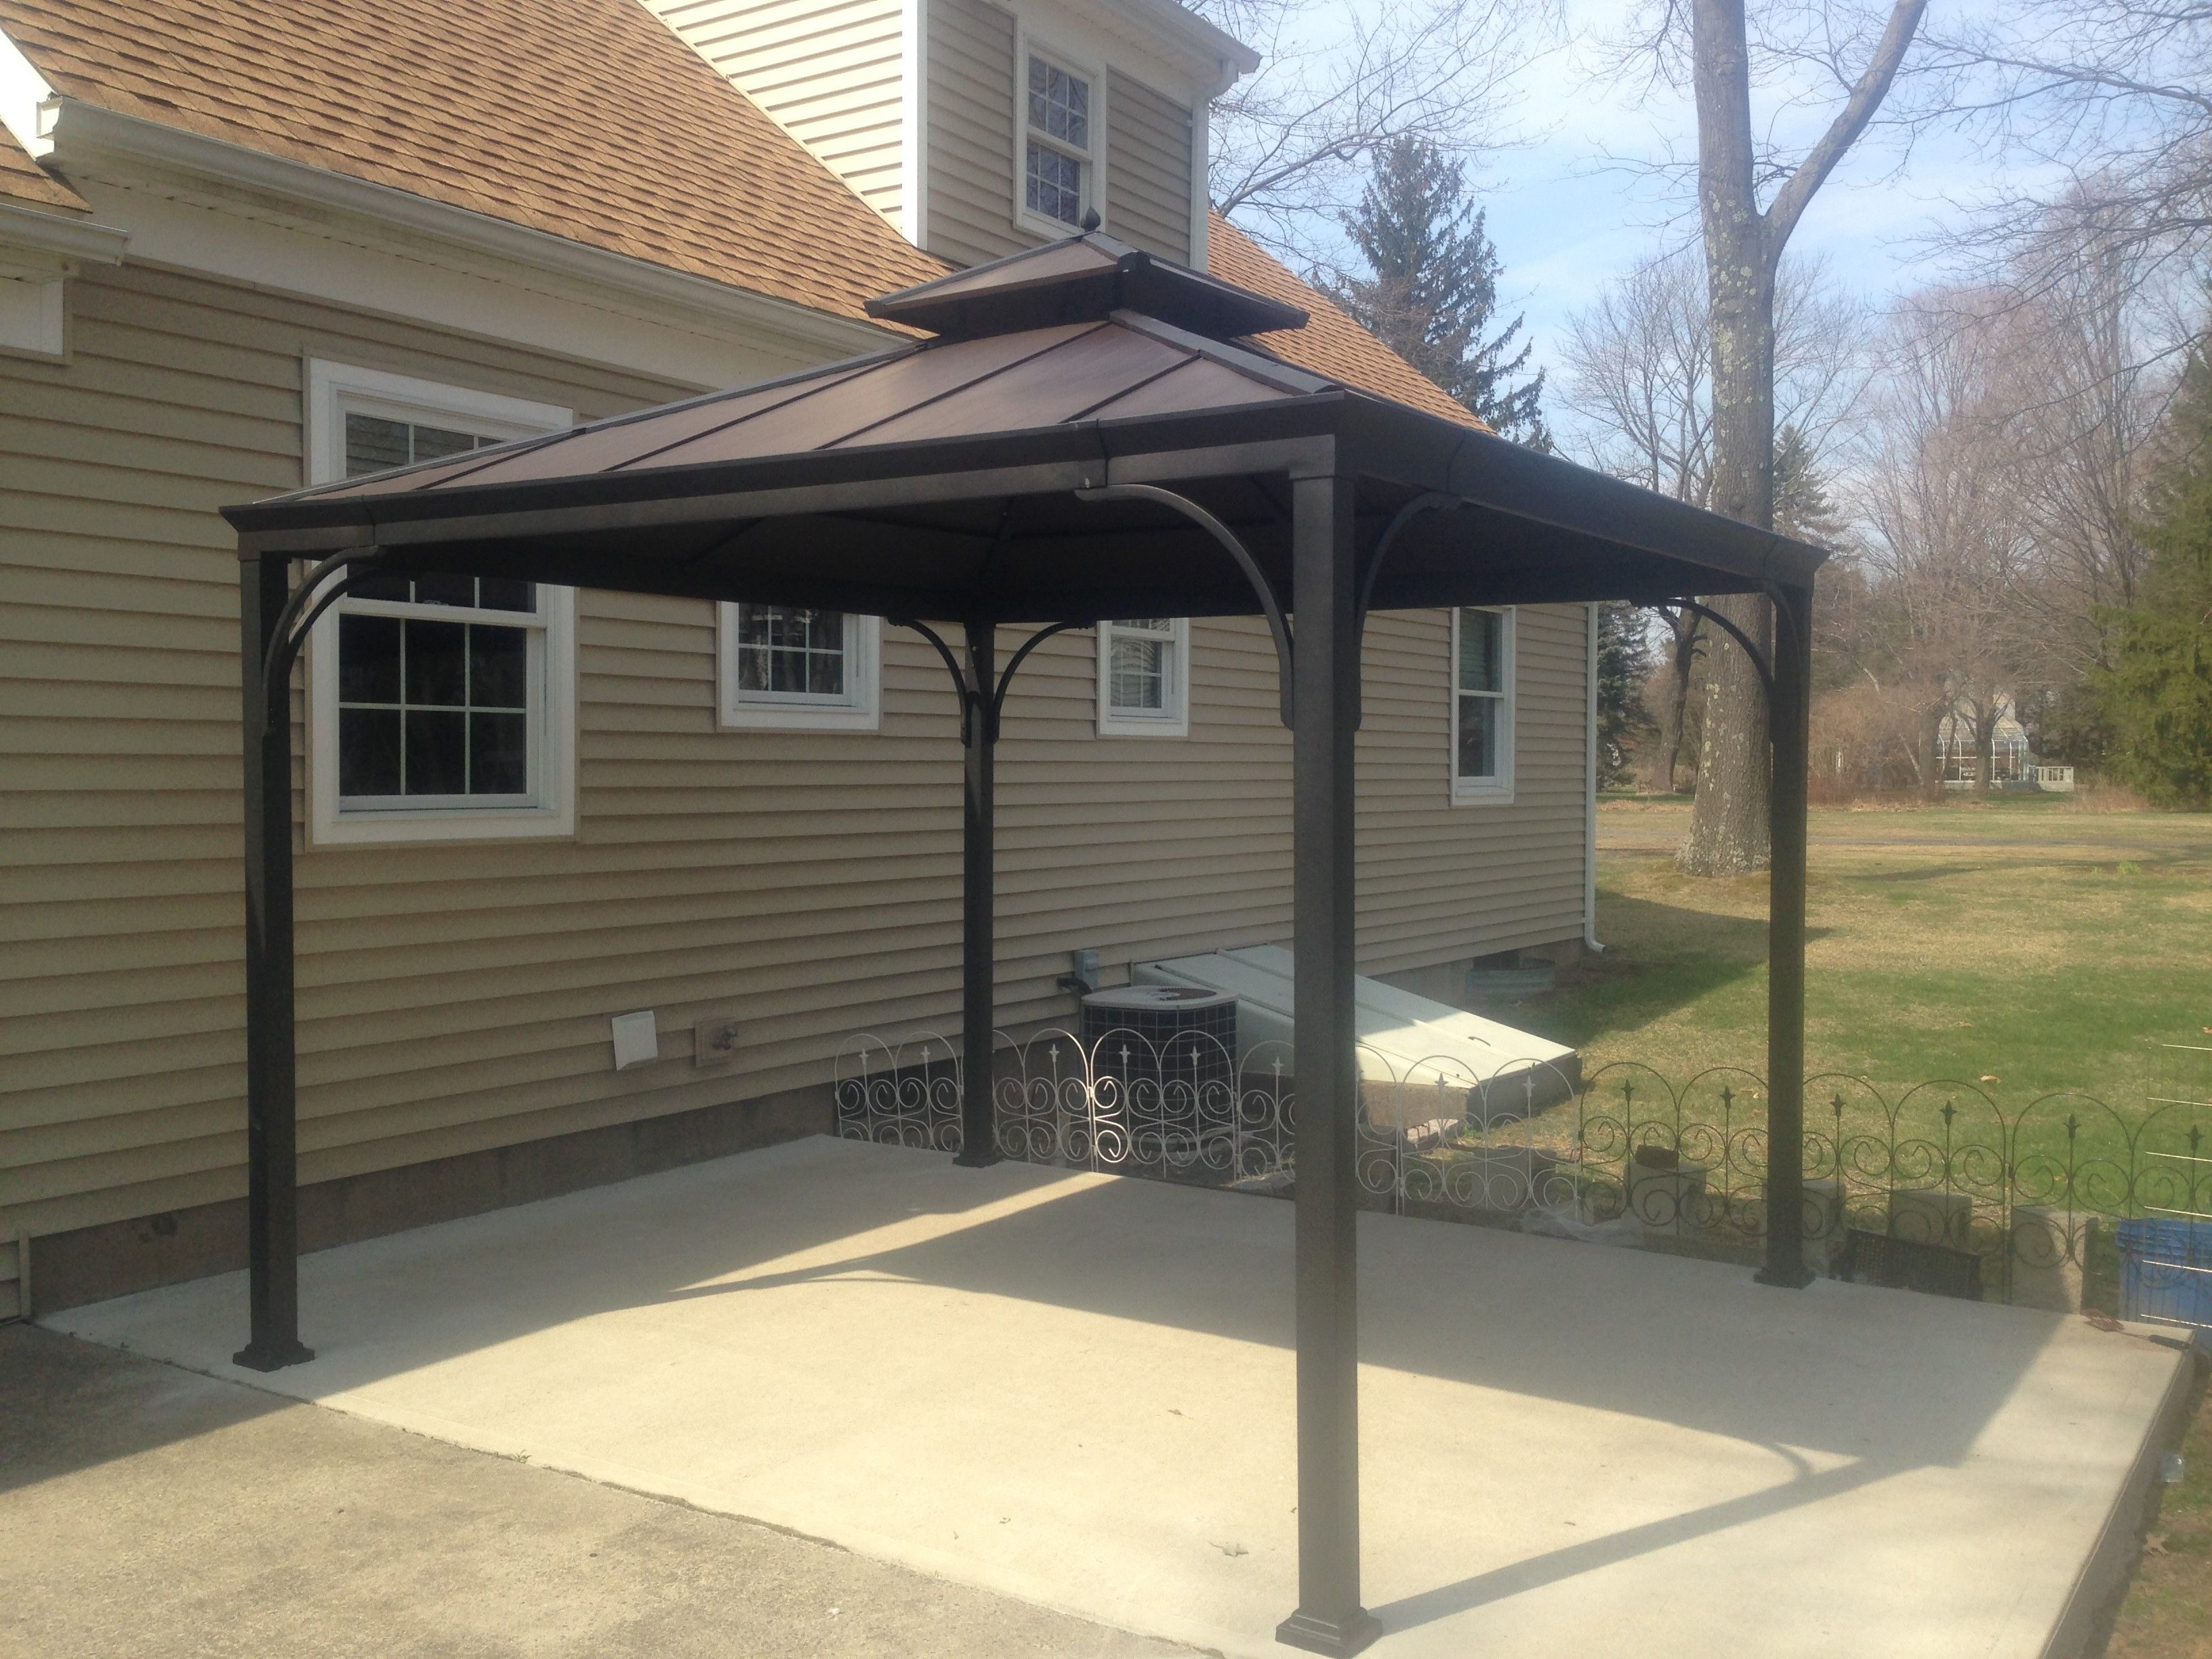 Harper 10 X 10 Metal Gazebo Purchased At Homedepot Assembled In Lake Elsinore Ca Gazebo Portable Gazebo Aluminum Gazebo